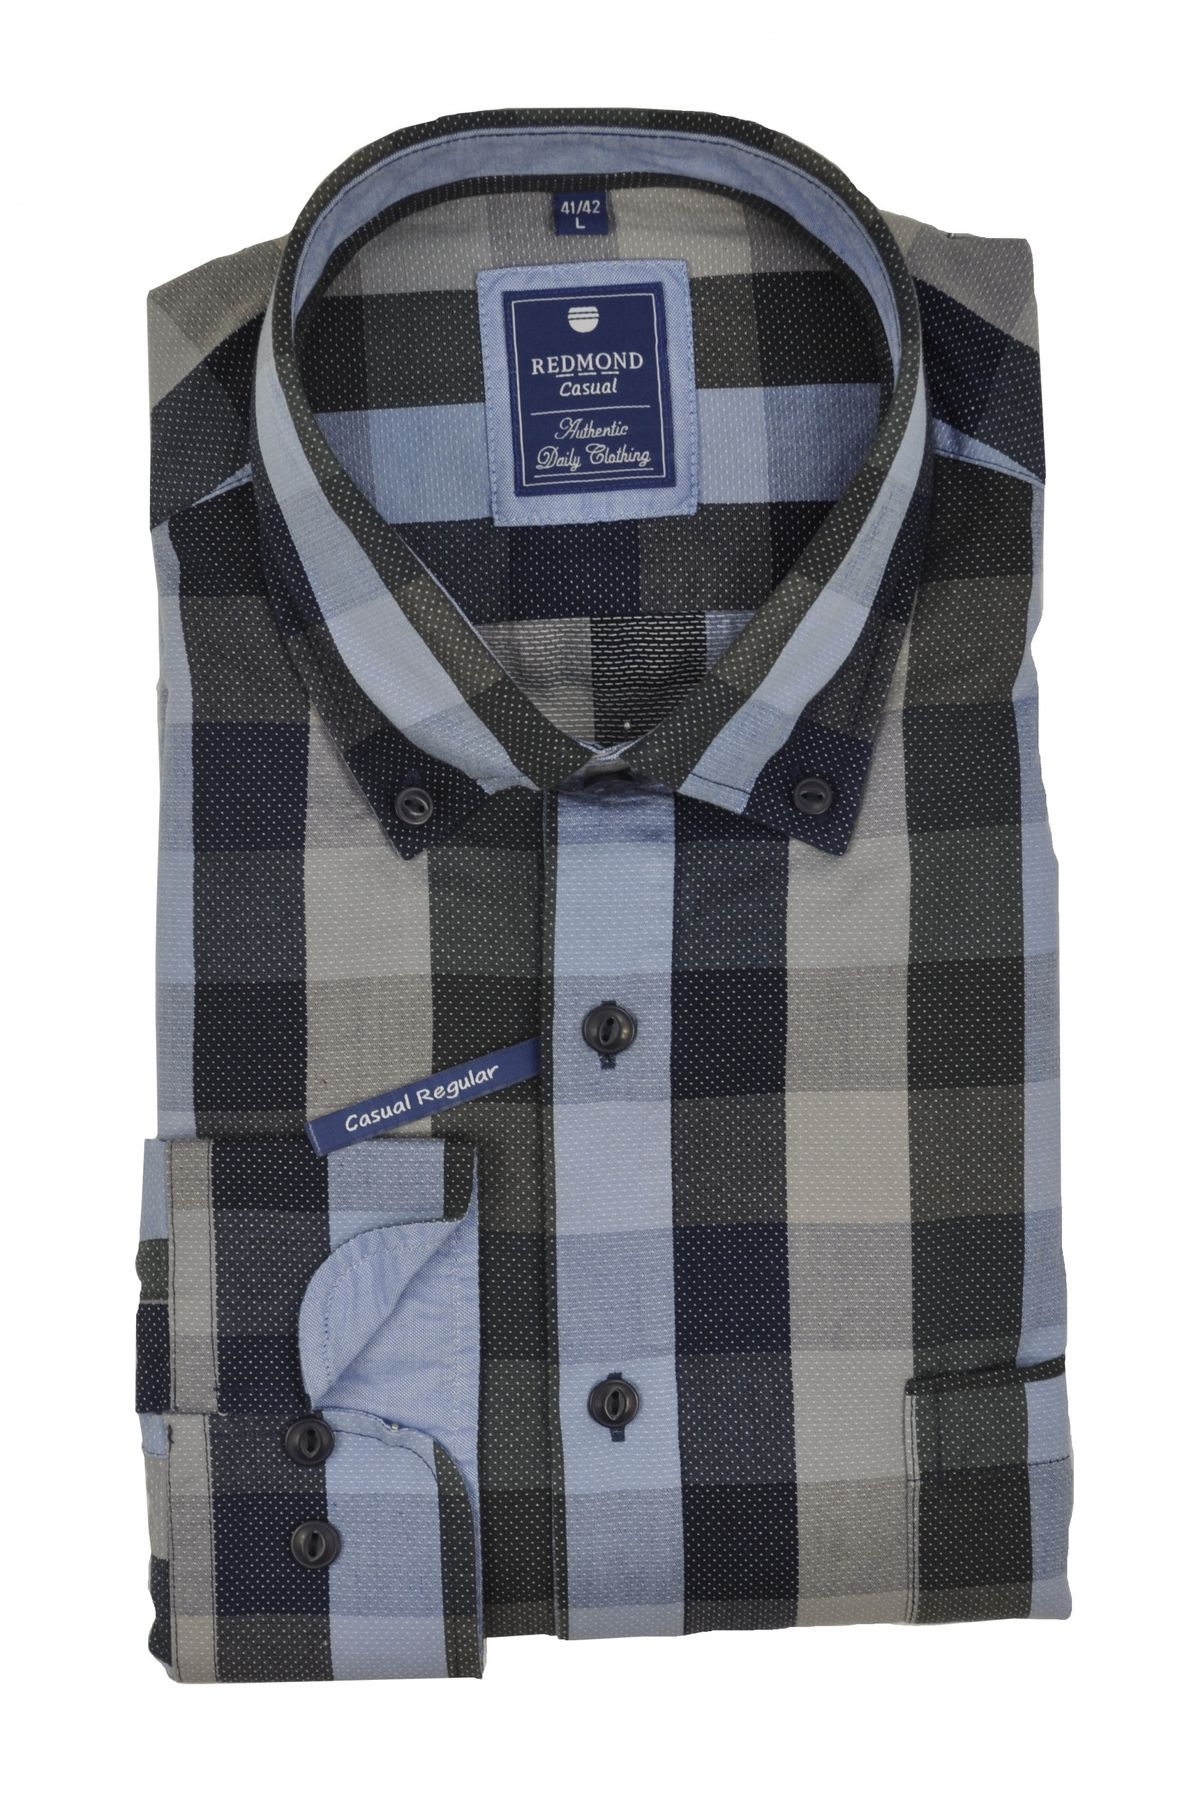 Redmond - Regular Fit - Herren Hemd mit Button-Down Kragen (62120111/62120333) – Bild 3